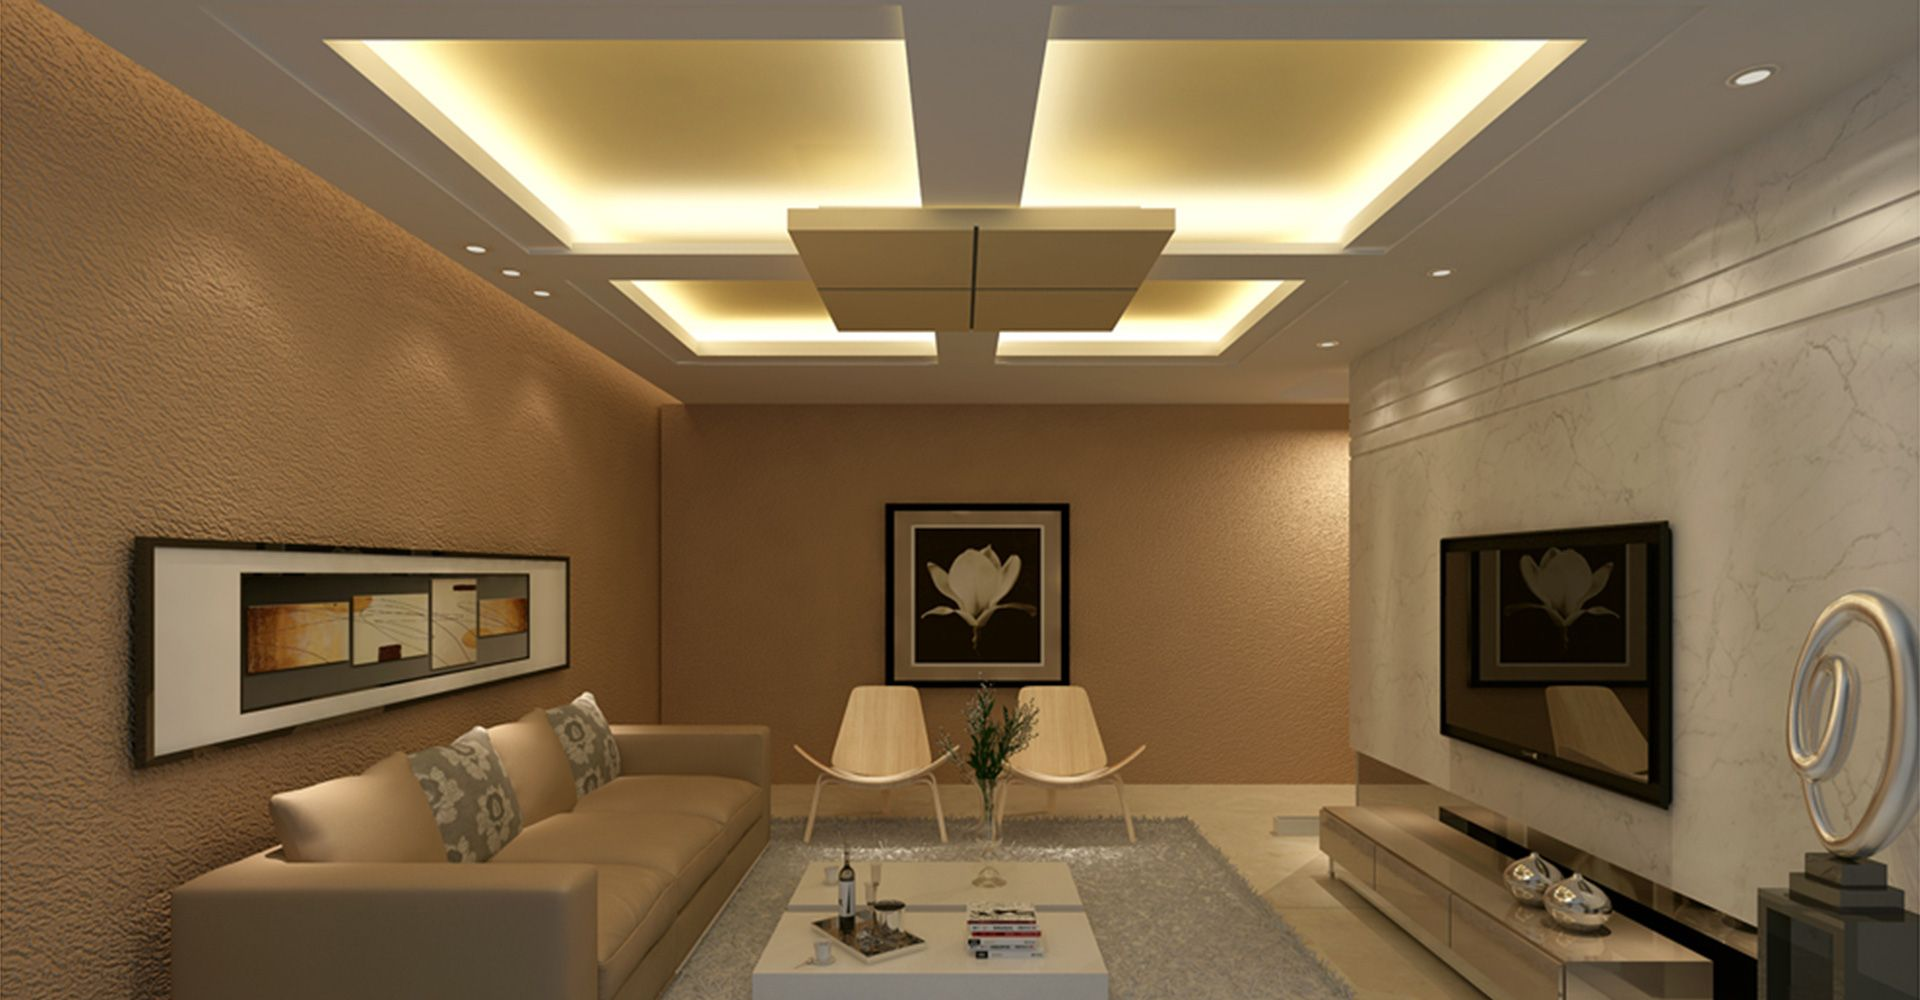 Simple Ceiling Designs For Living Room In India Luxury Furniture Collection 20 Vaulted Ideas To Steal From Rustic Futuristic Design Best Modern 2017 Of 35 Latest Plaster Ceilingideas Ceilingdesign